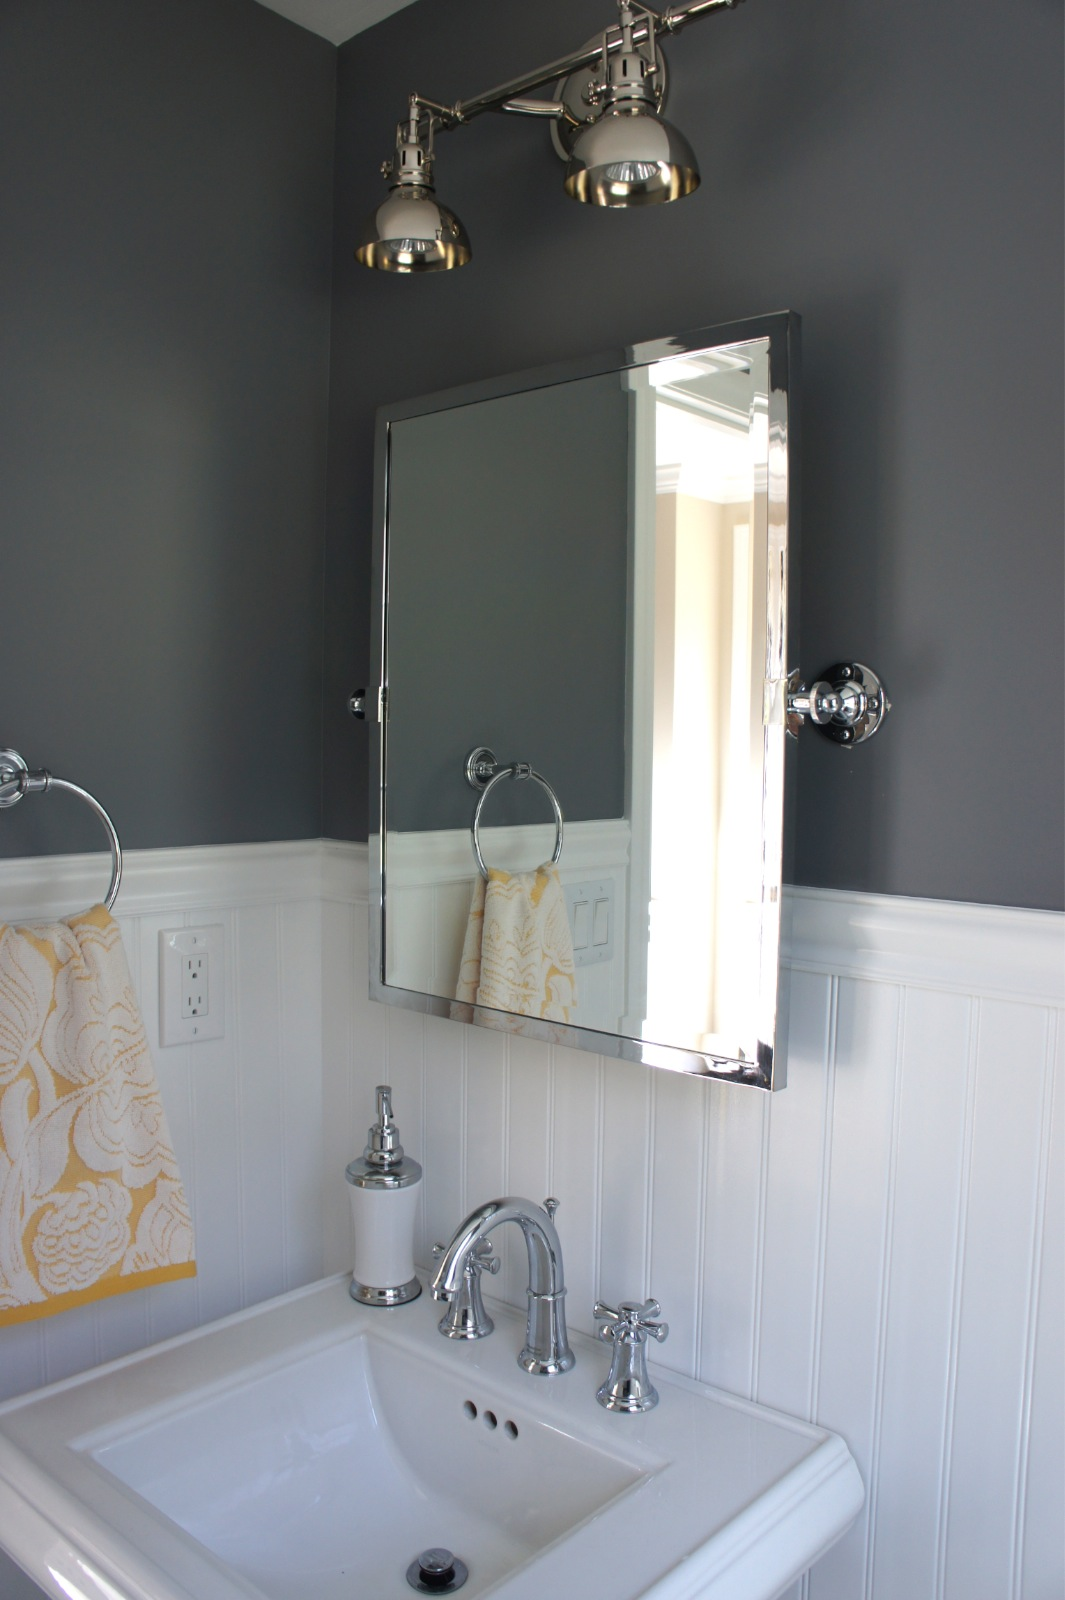 Home with baxter bathroom art and other updates for Lights for bathroom mirrors